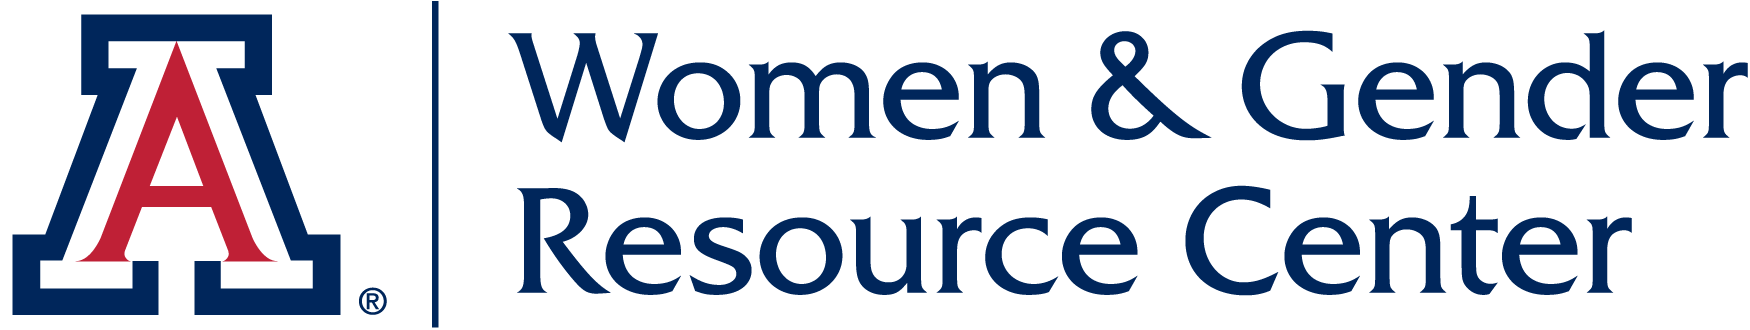 Woman & Gender Resource Center